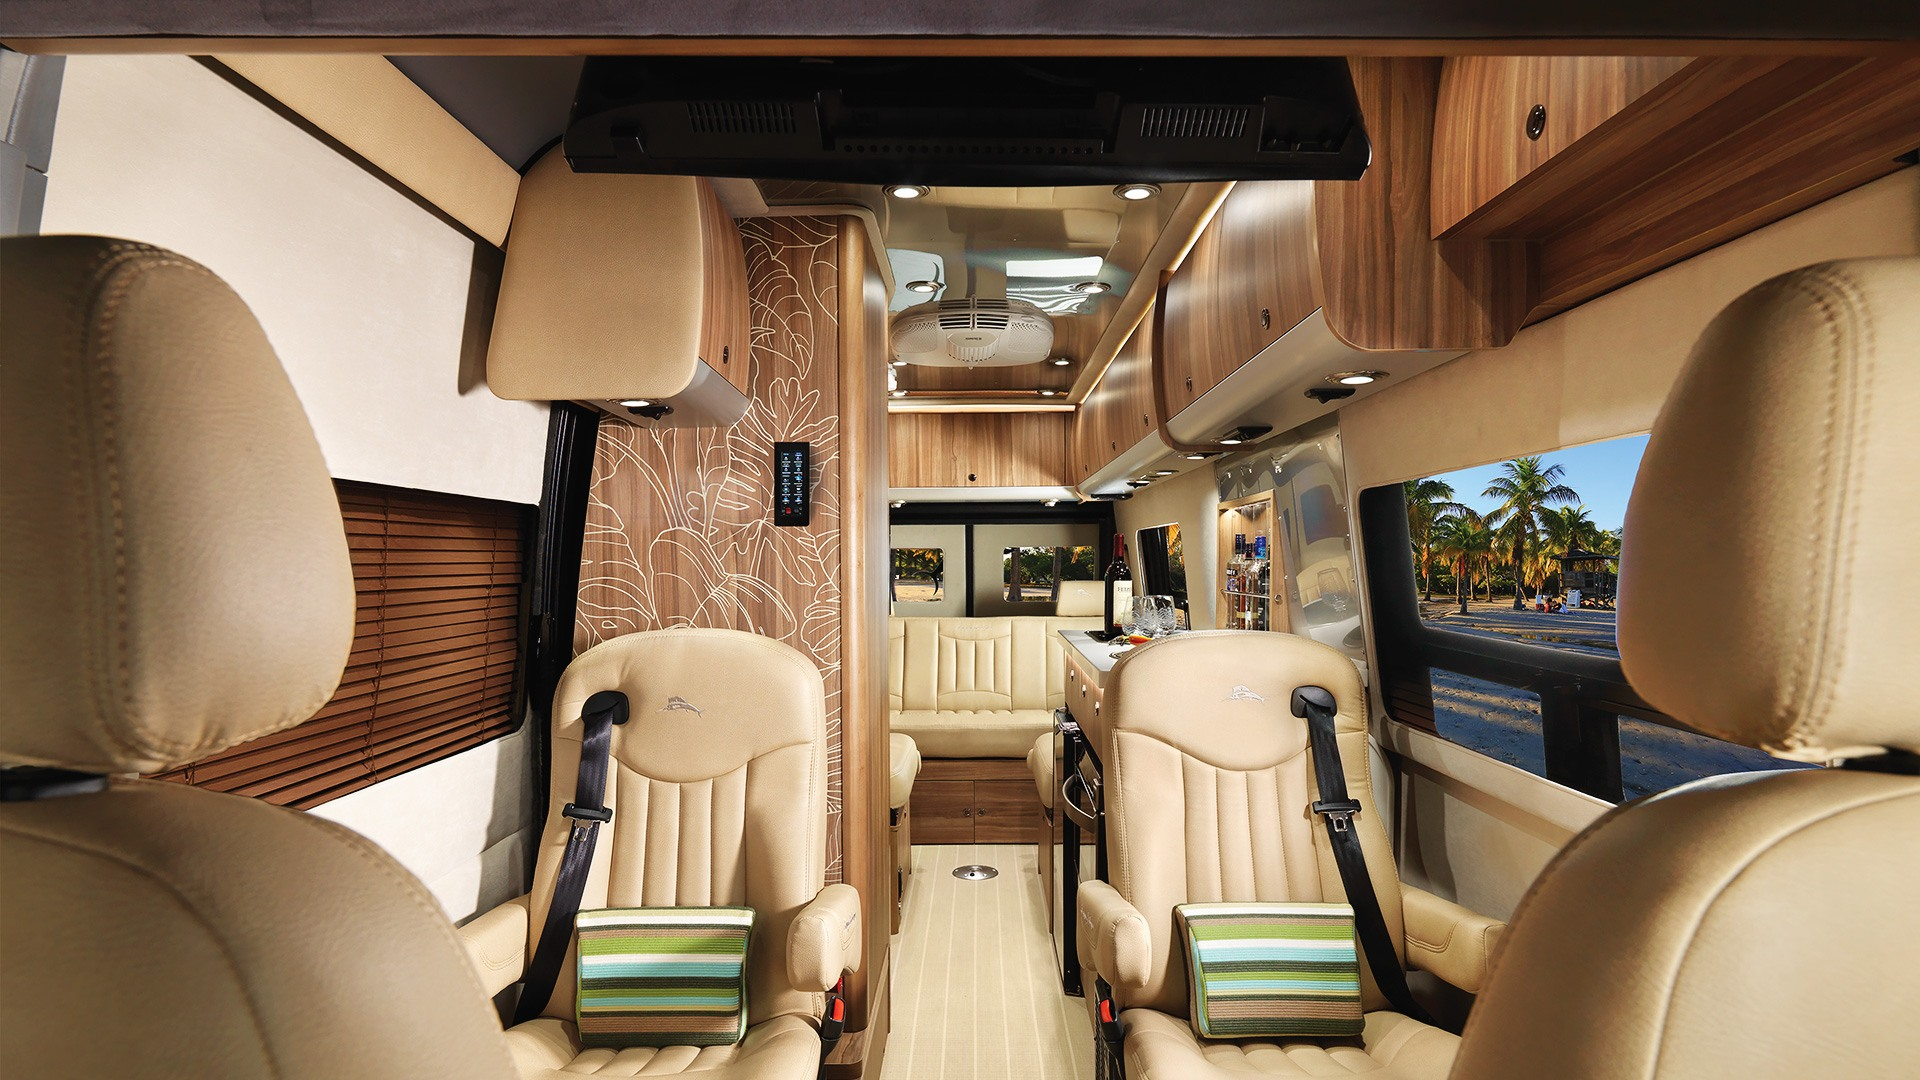 Gallery Tommy Bahama Interstate Touring Coaches